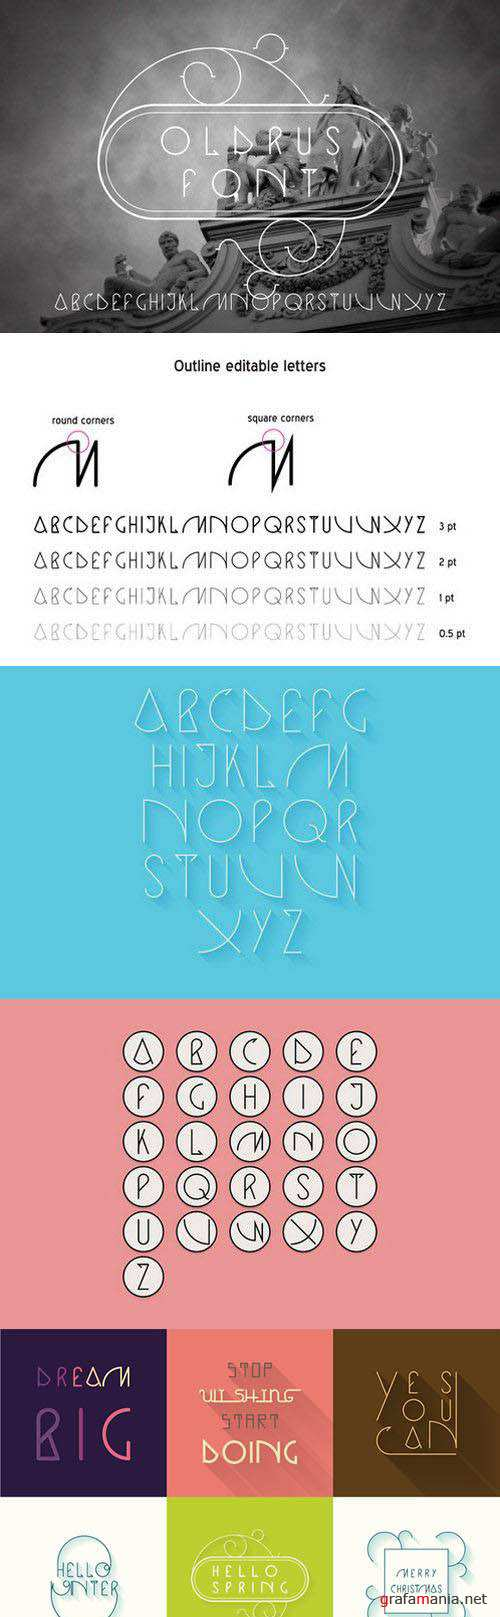 Vector font Oldrus linear